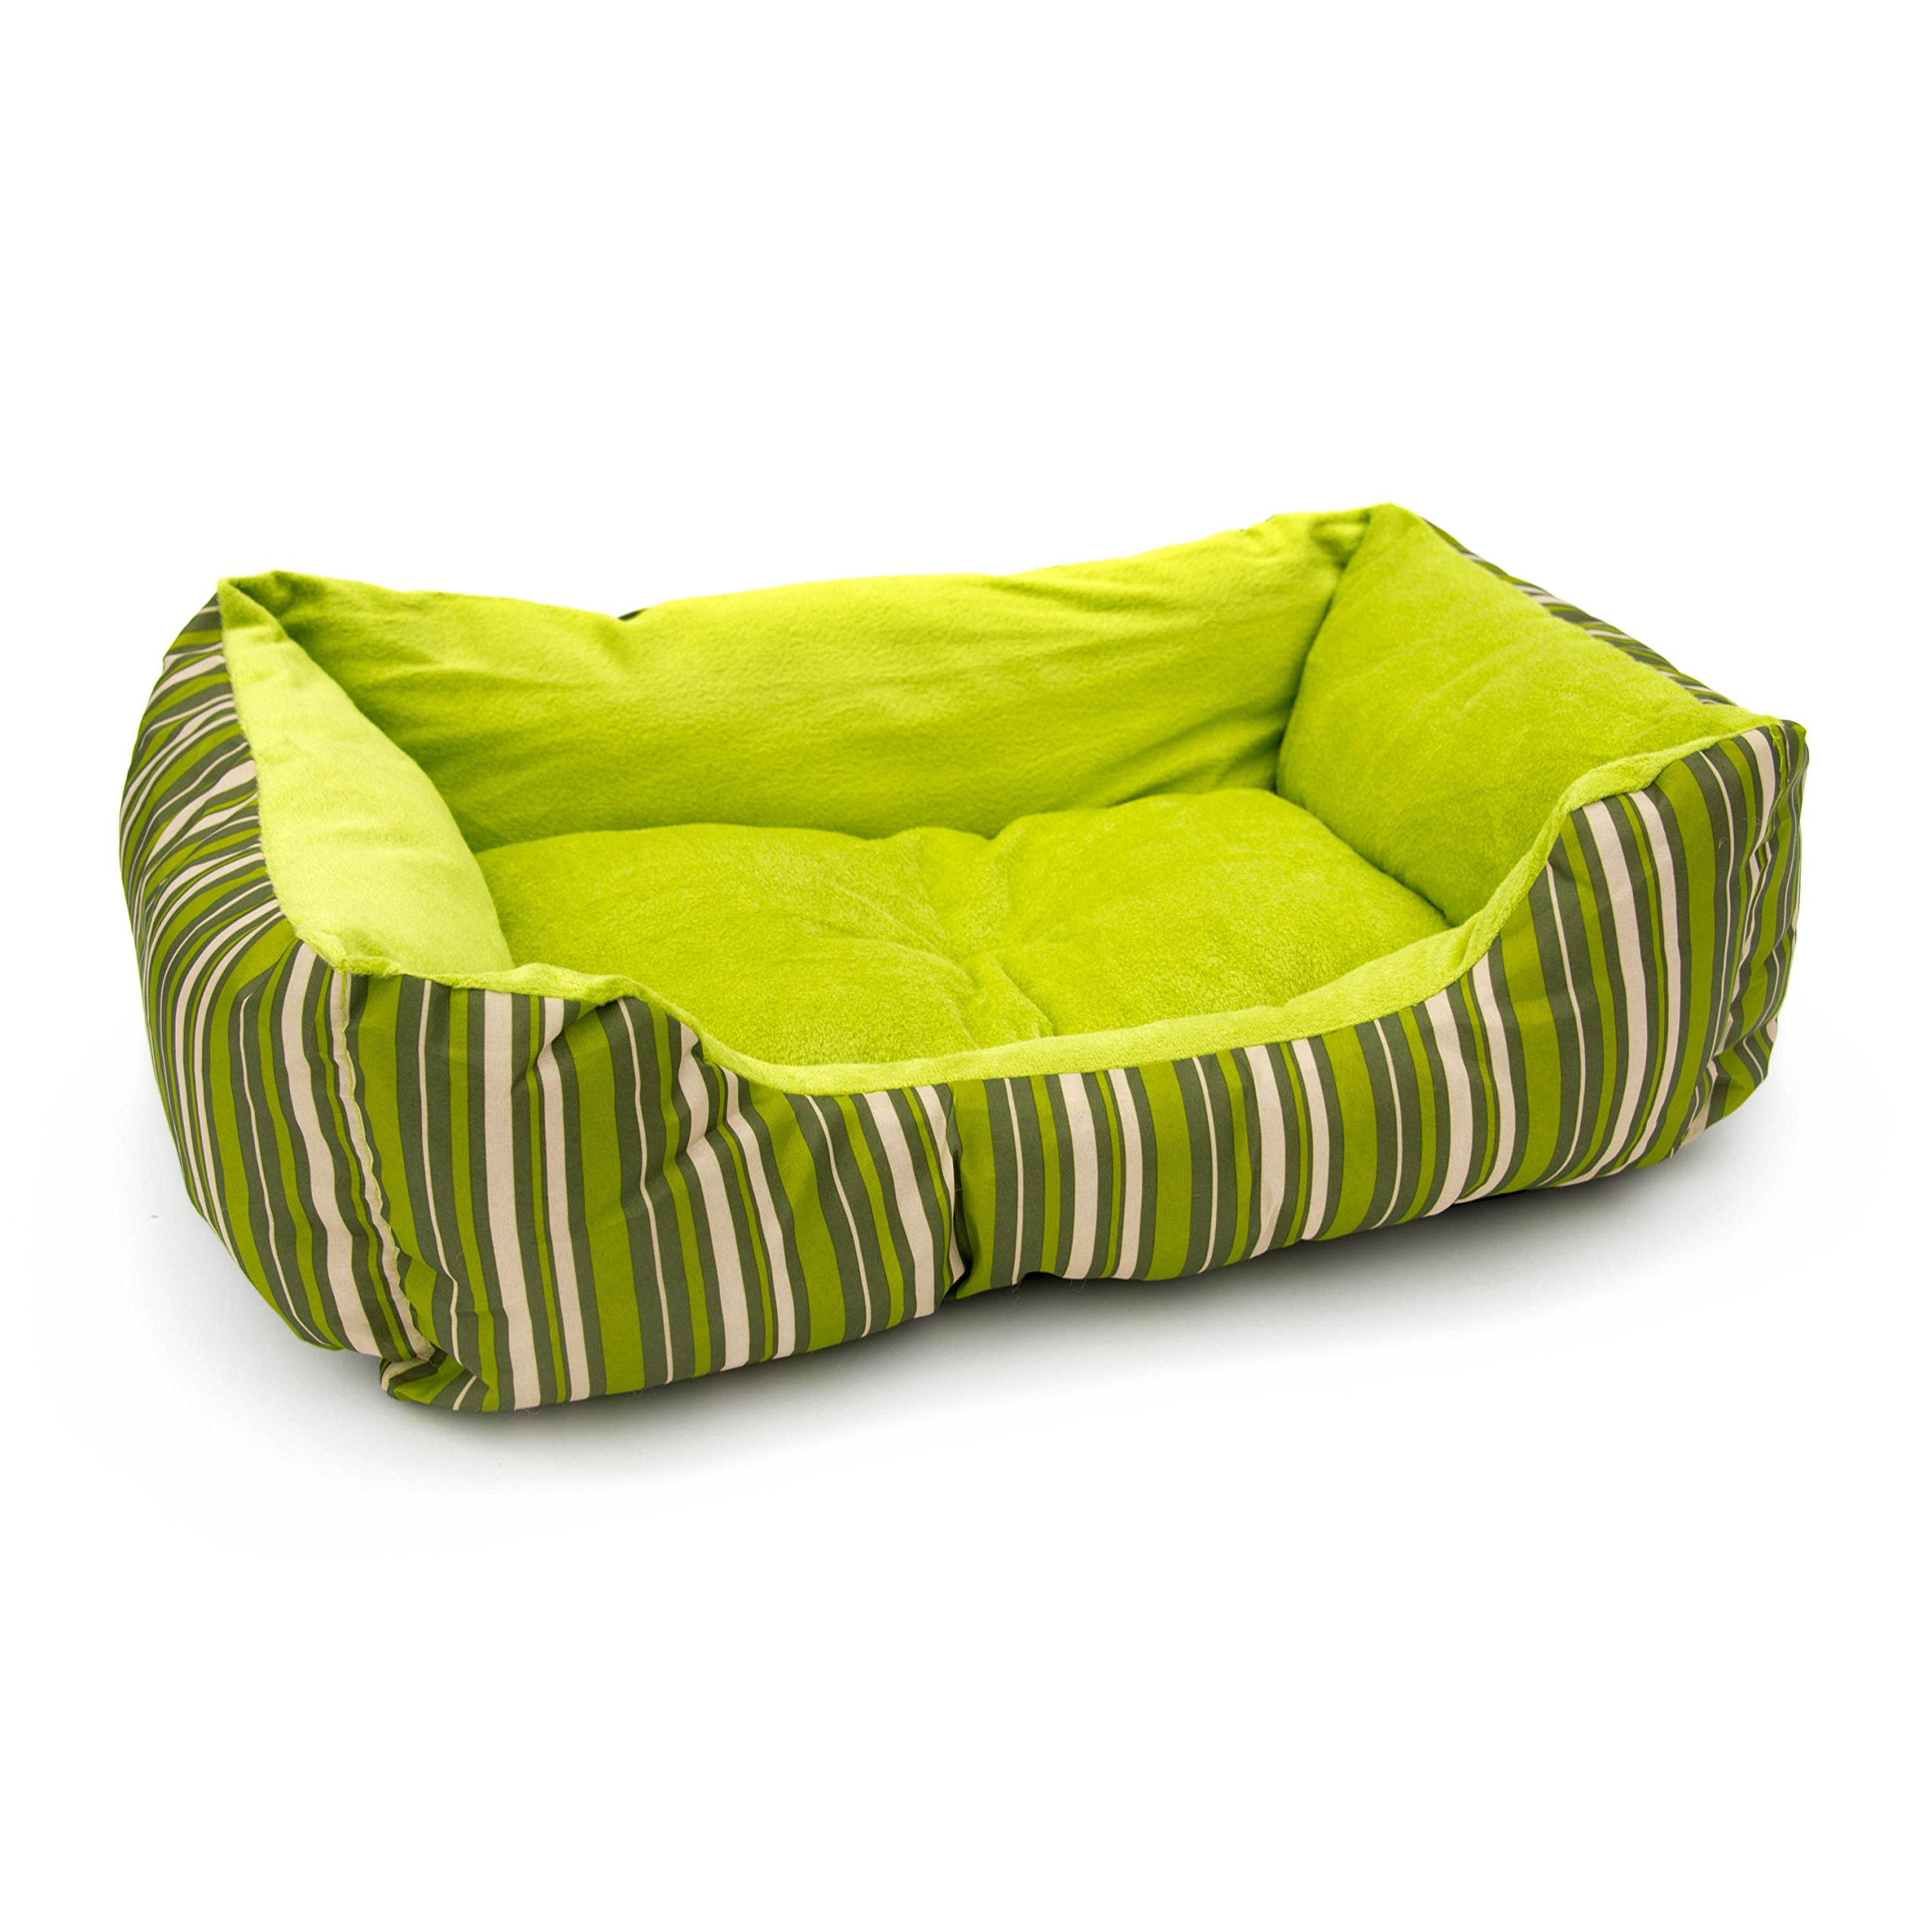 ALEKO PB06STGR Plush Pet Cushion Crate Bed for Dogs Cats Medium Machine Washable Indoor Outdoor 20 x 16 x 6 Inches Green Striped